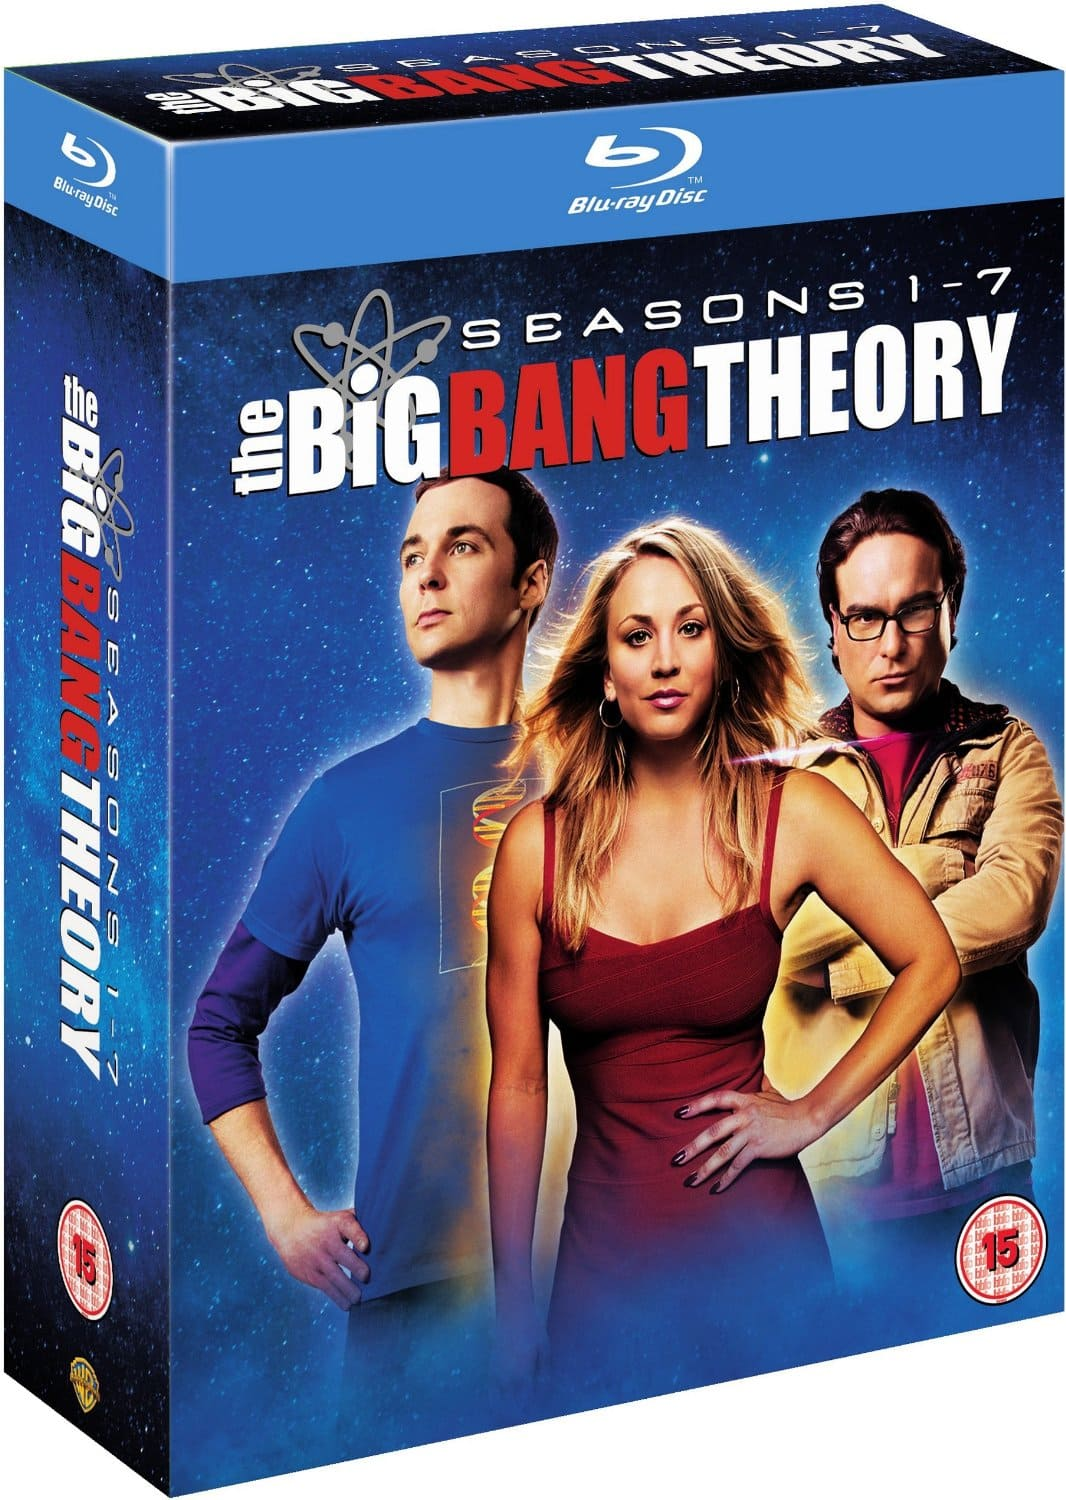 The Big Bang Theory: Seasons 1-7 Blu-ray $33 Shipped